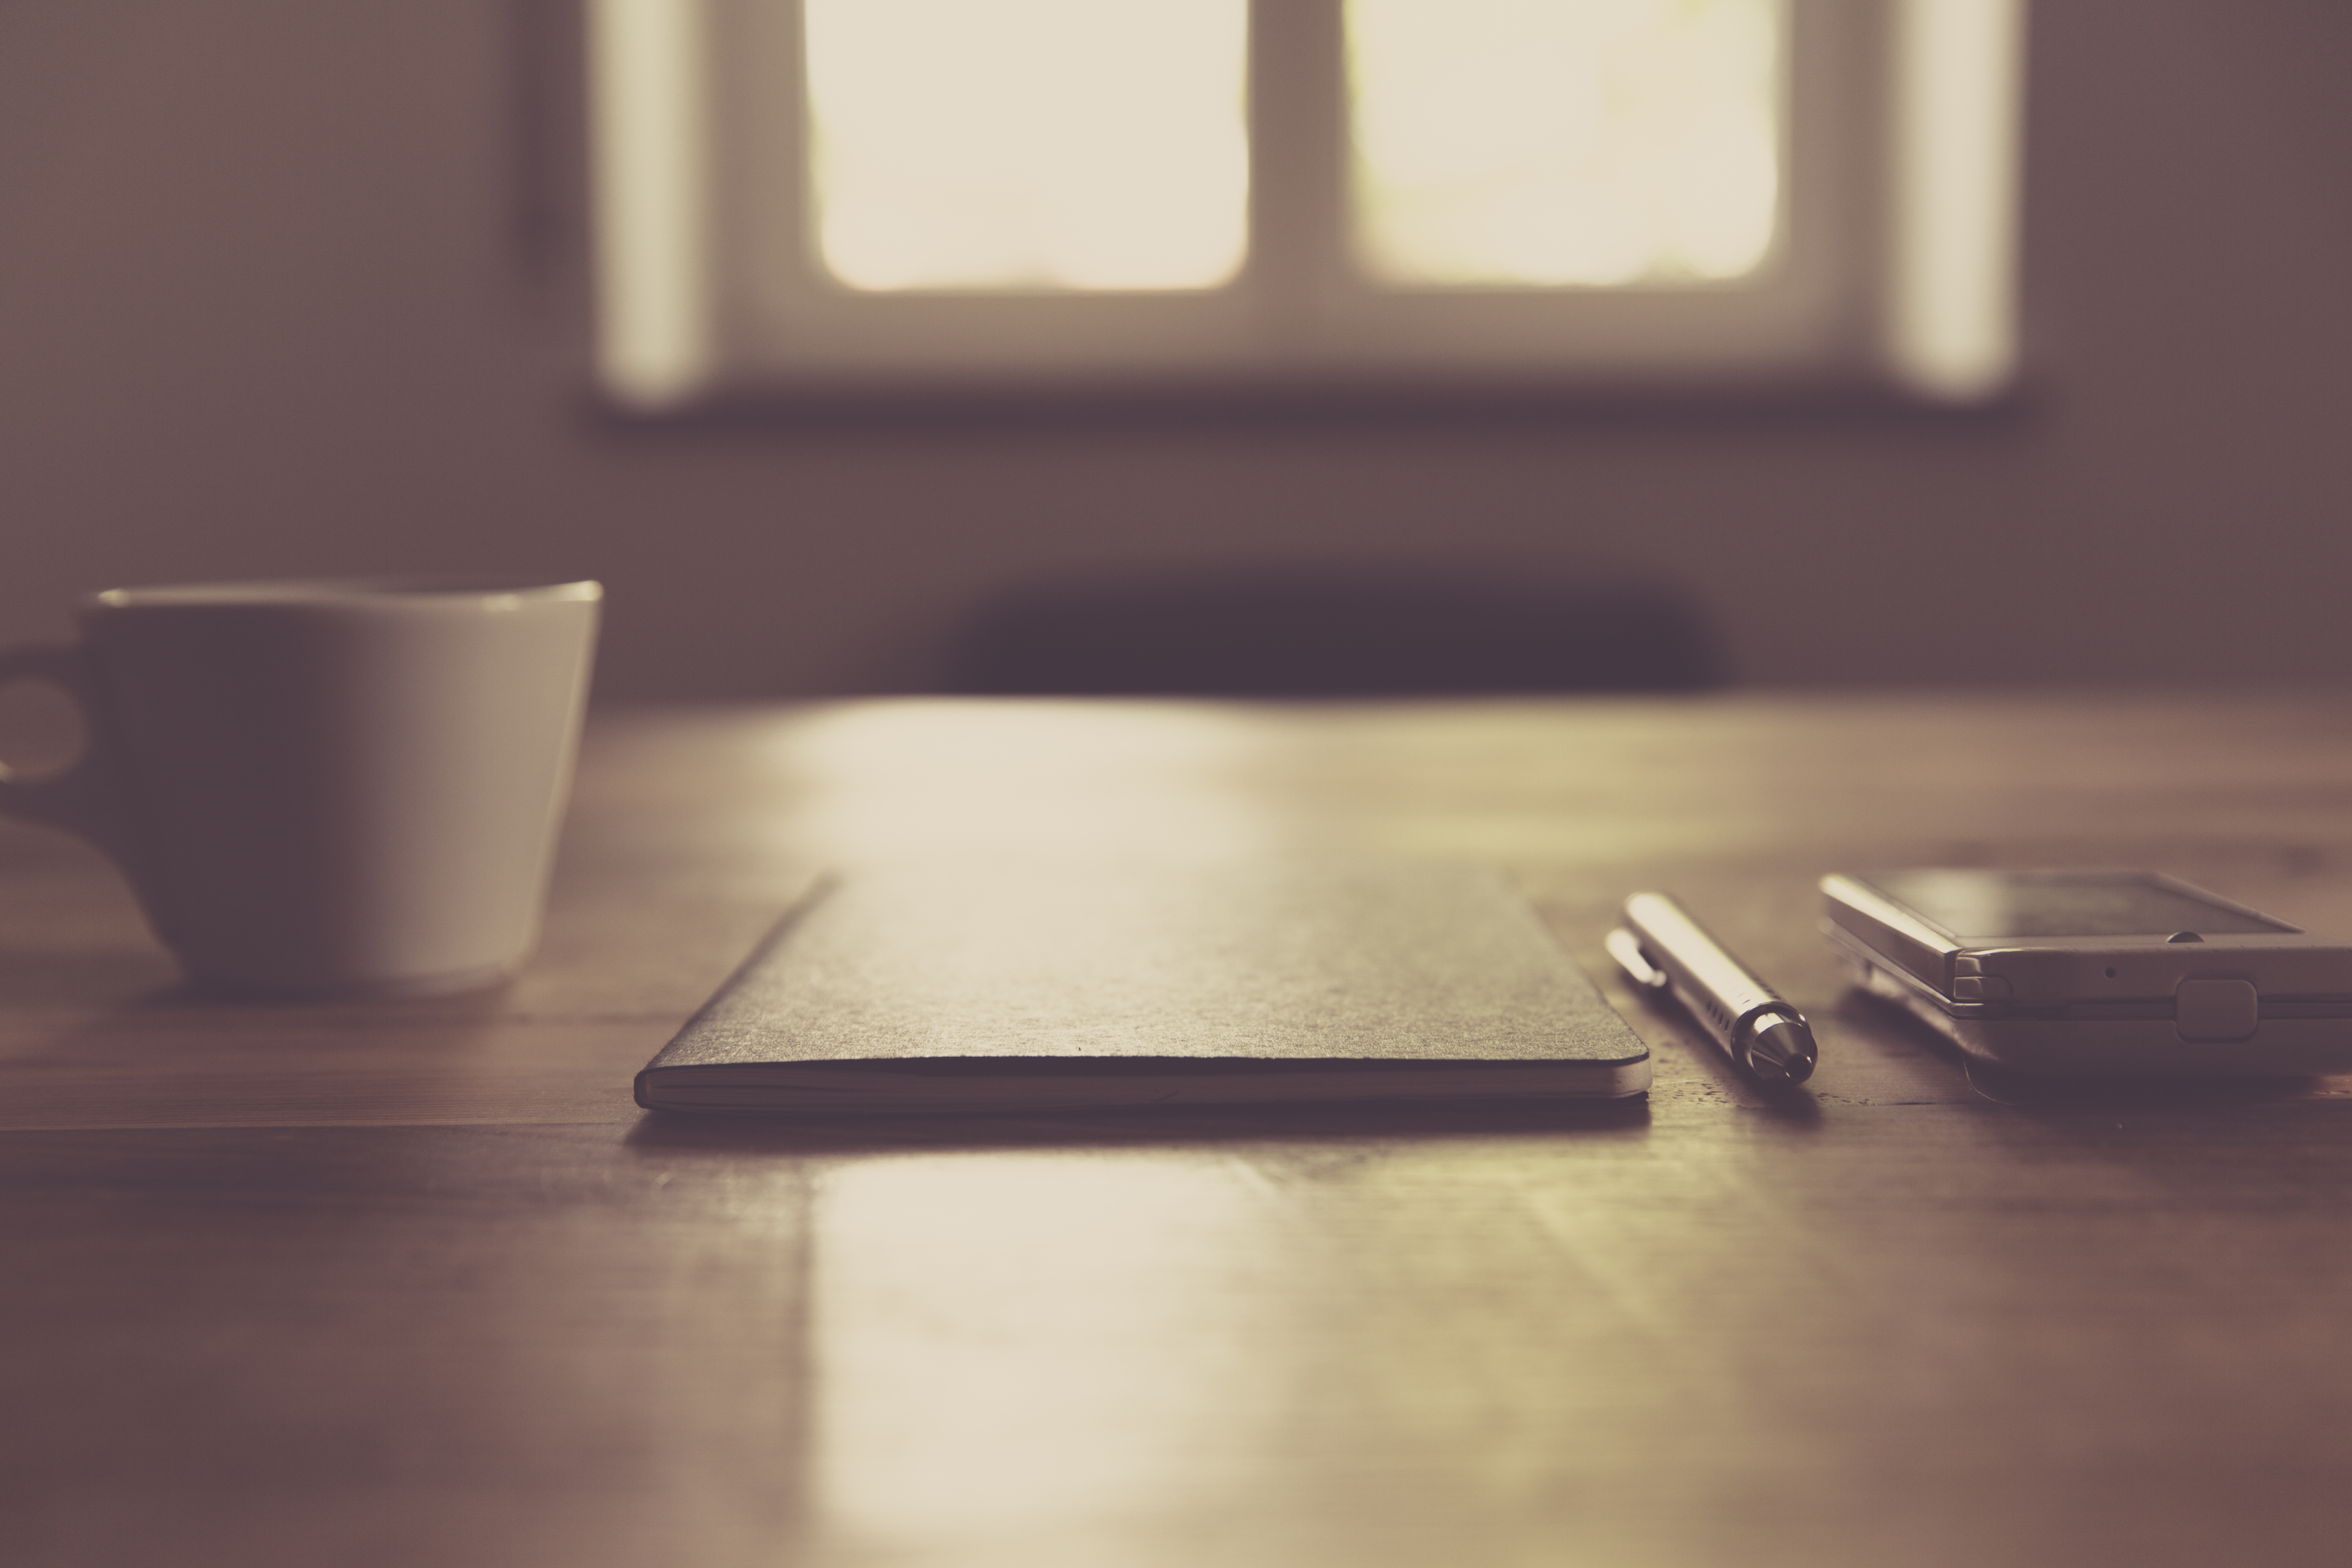 Free Images : desk, notebook, smartphone, writing, table, light ...